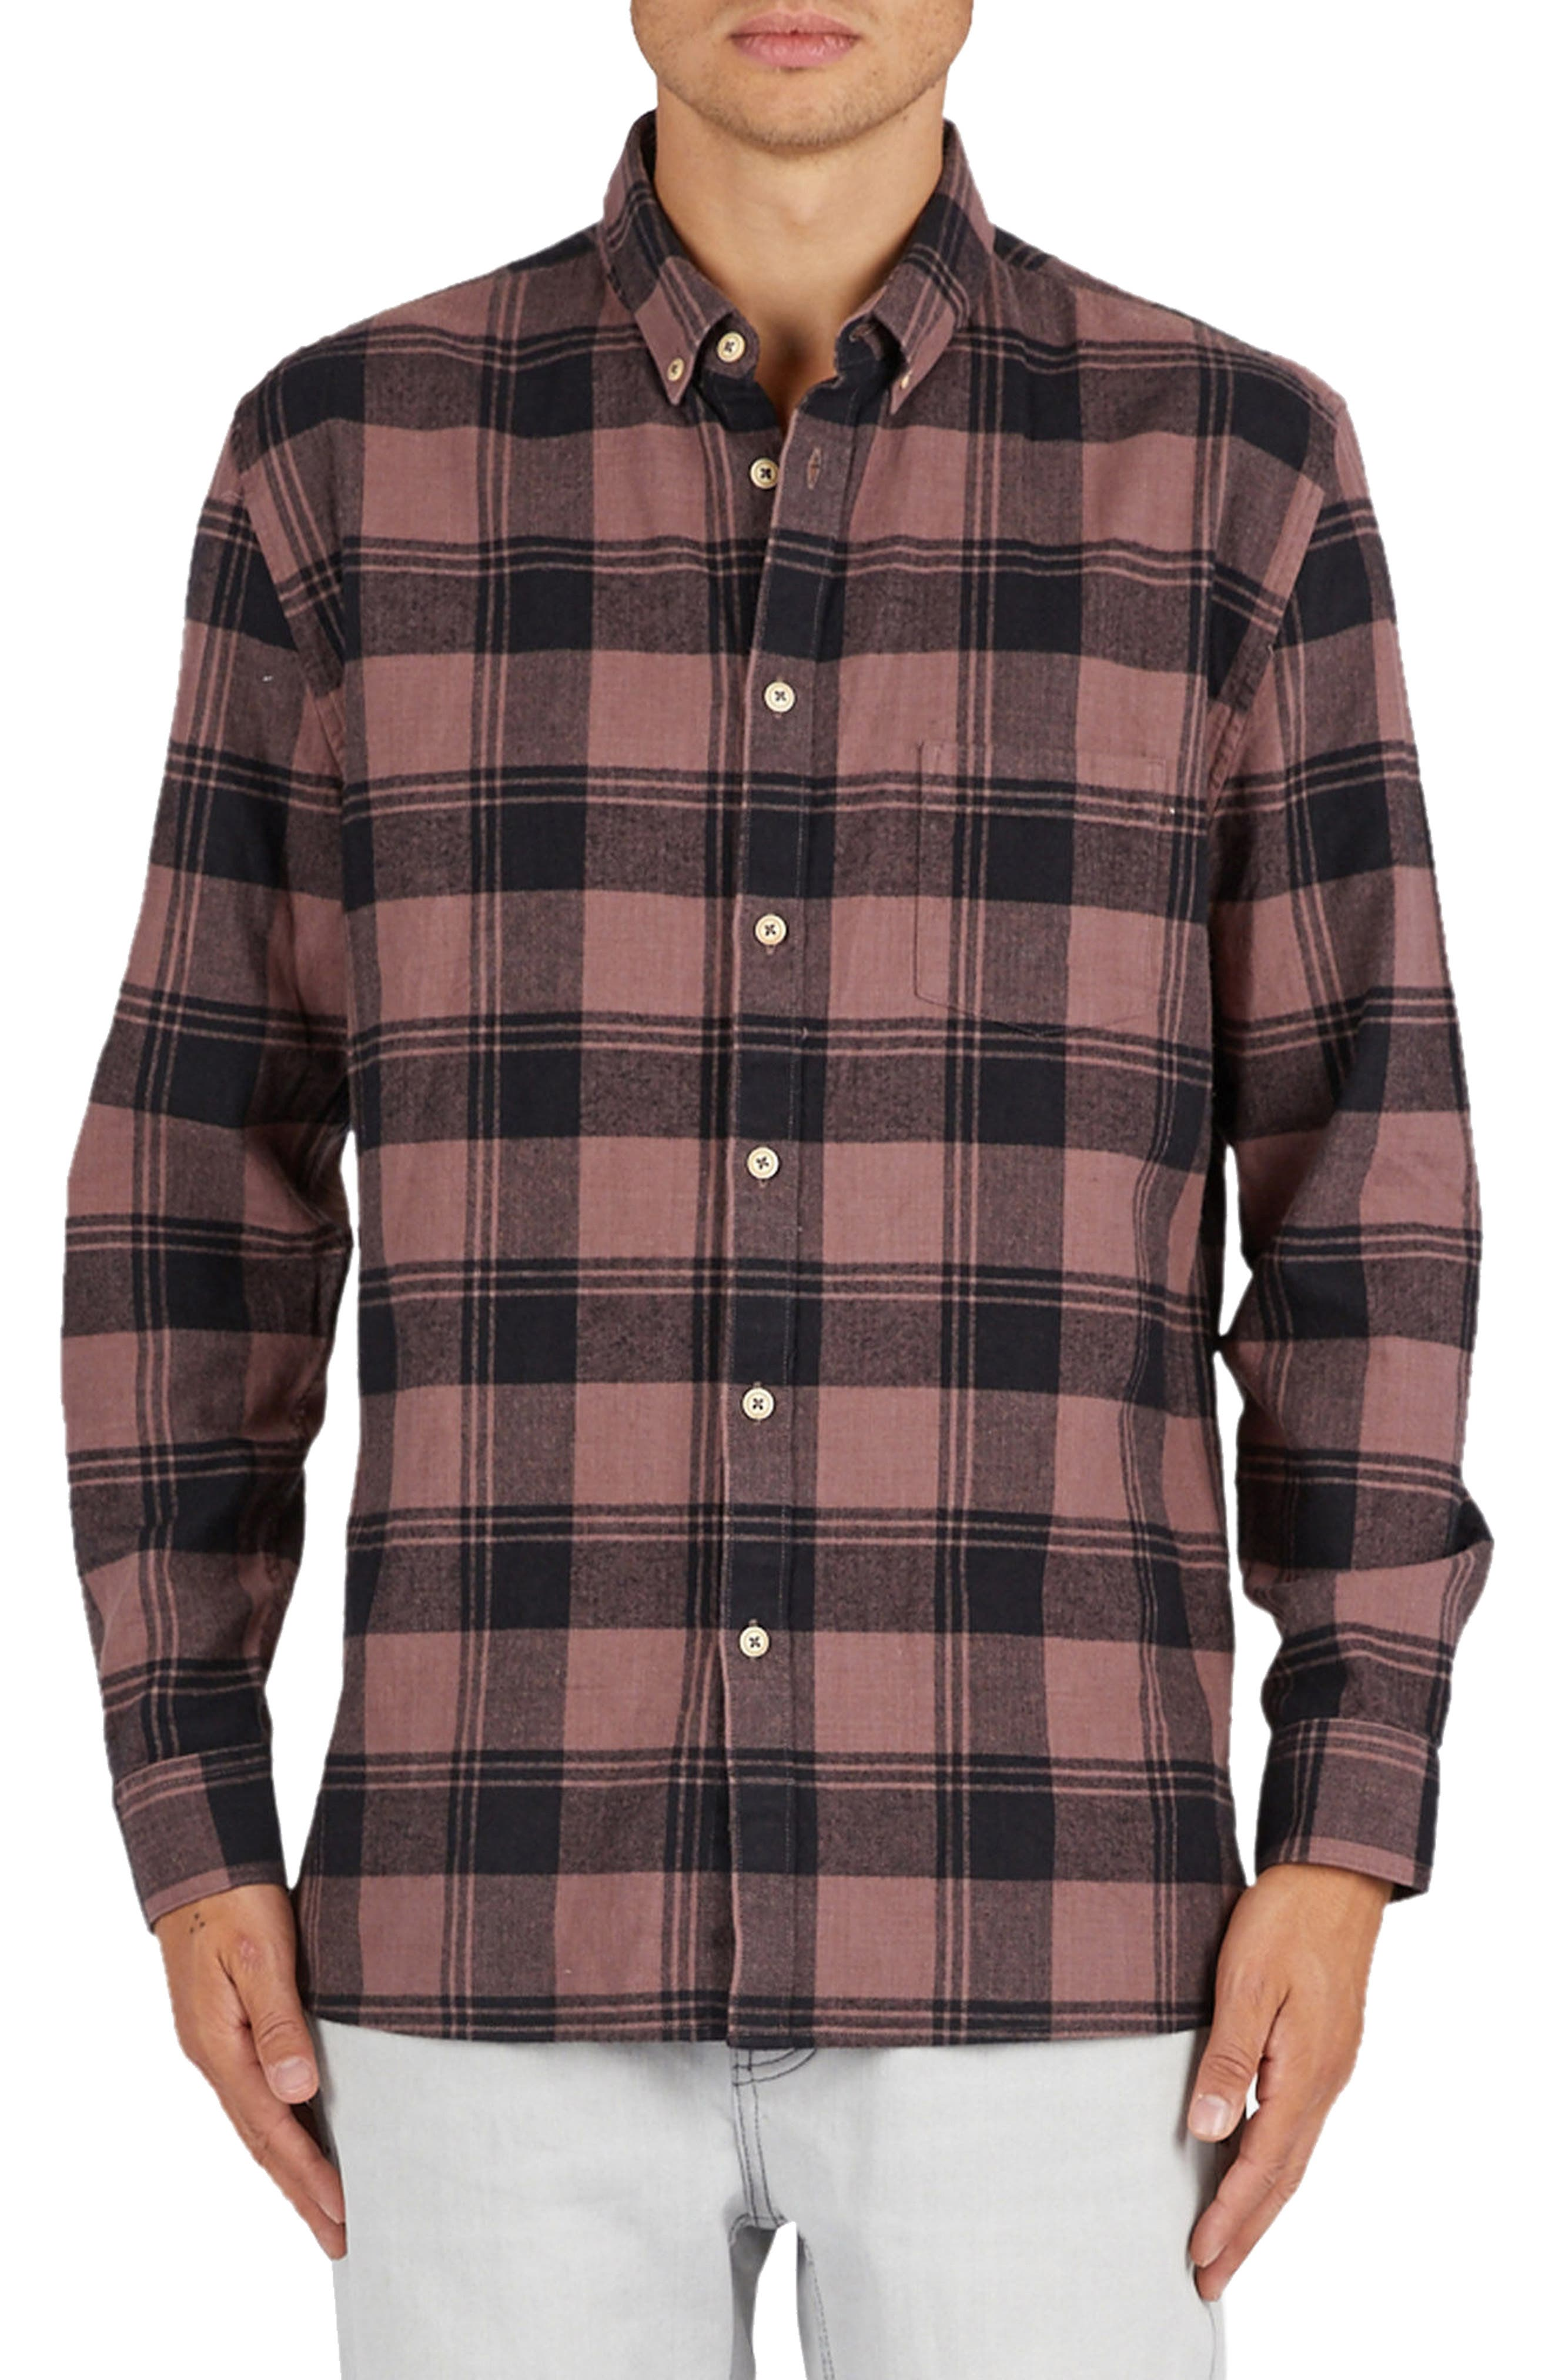 Barney Cools Cabin Plaid Flannel Sport Shirt